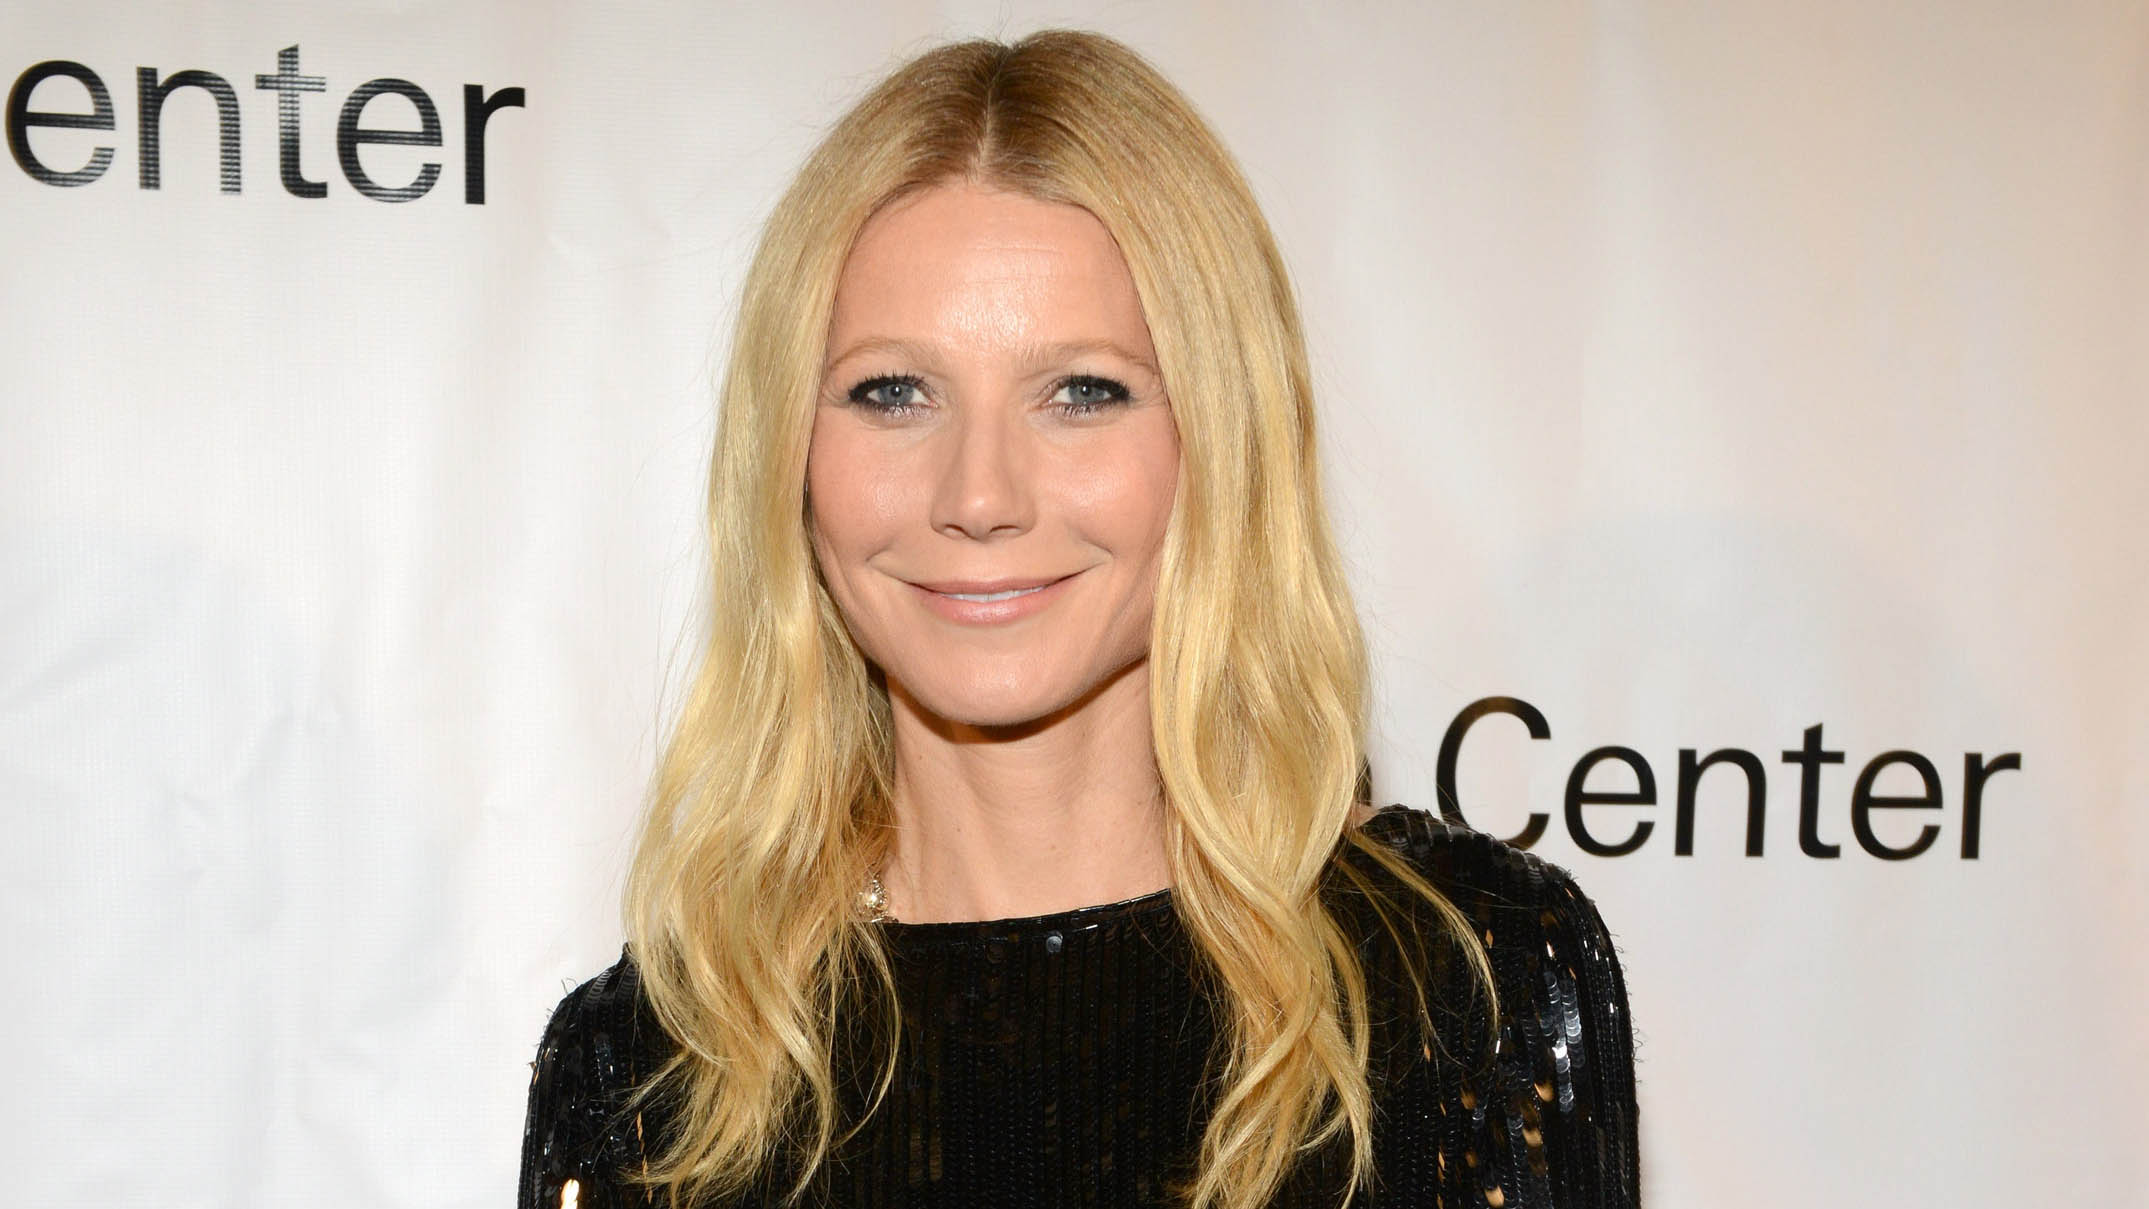 So, Gwyneth Paltrow's Goop Just Published a Guide to Anal Sex